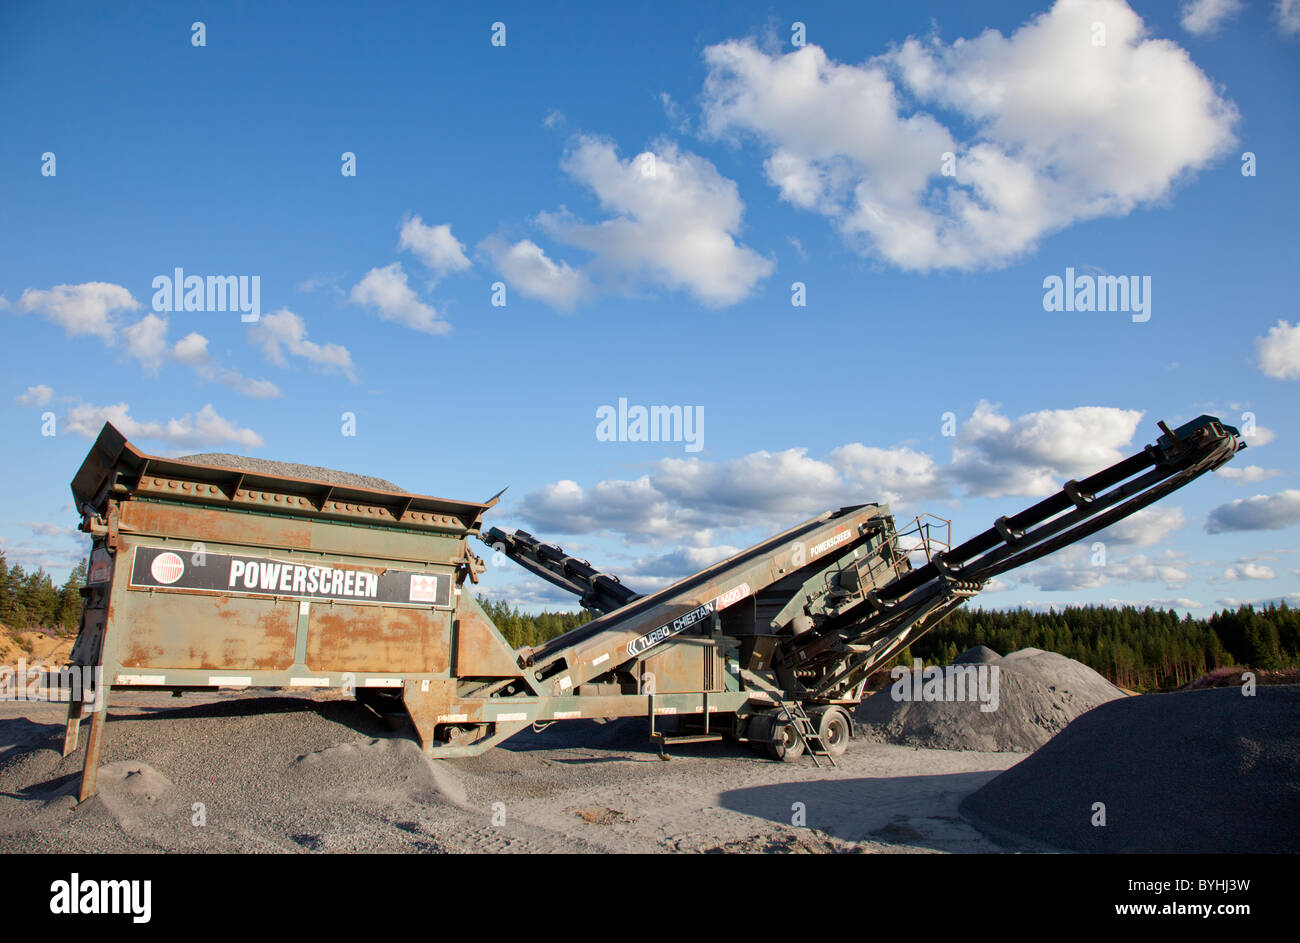 Powerscreen Turbo Chieftain 1400 screening unit and conveyor belt for screening sand, gravel and aggregates at rock - Stock Image